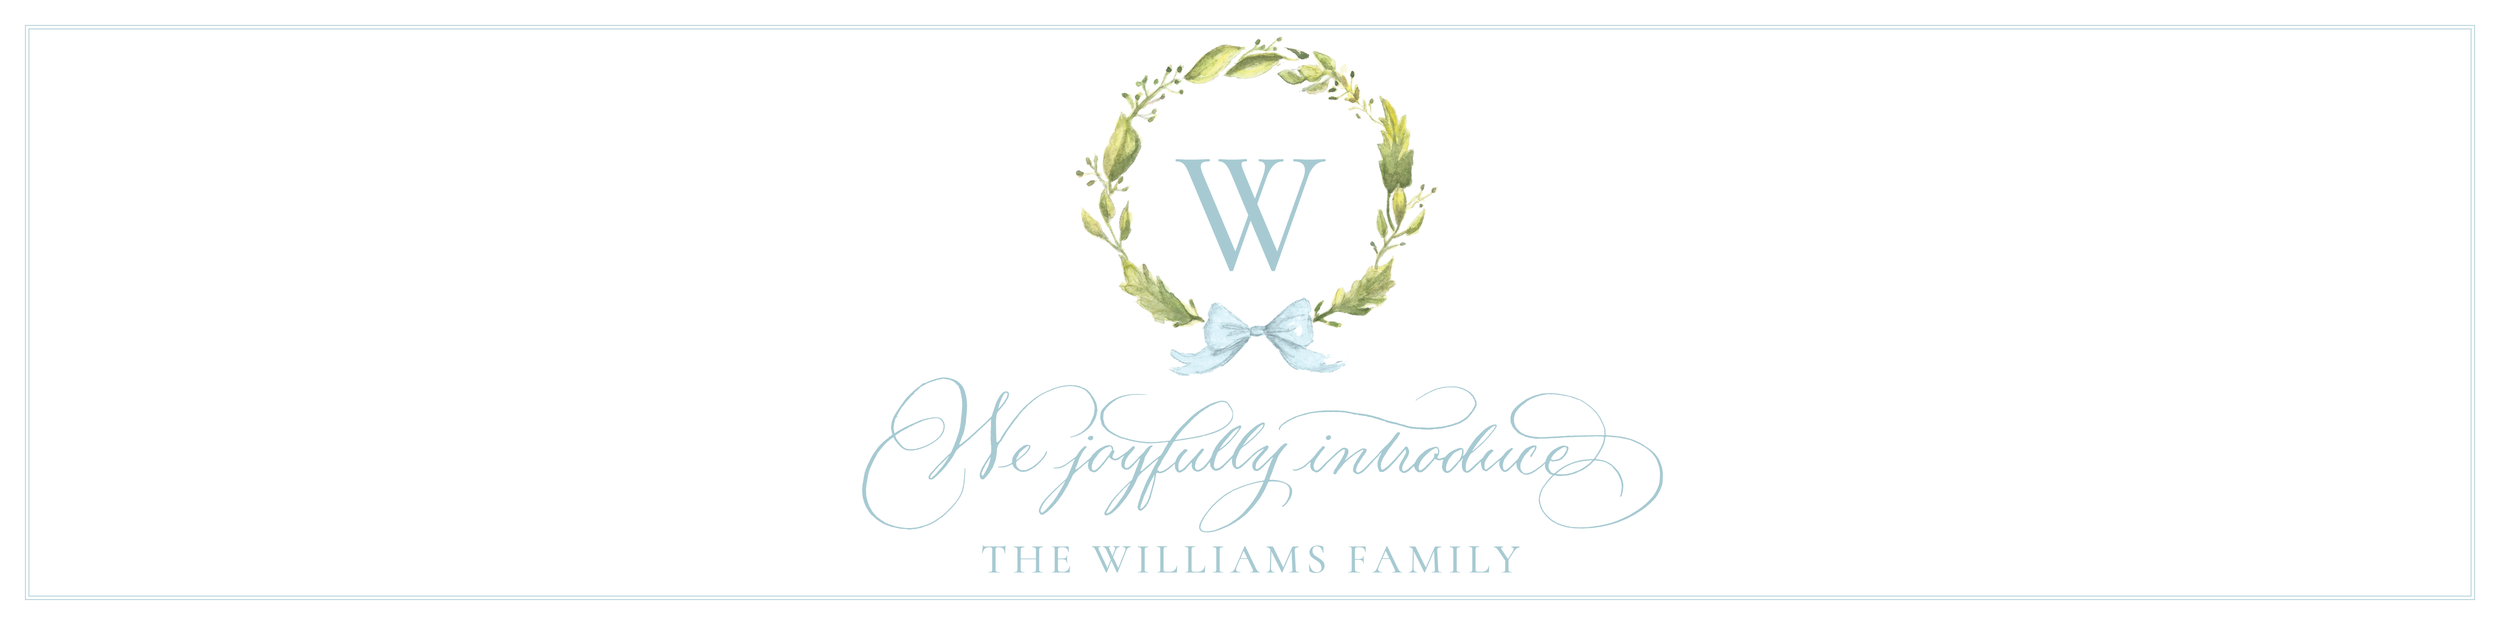 The Williams Family by Sugar B Designs